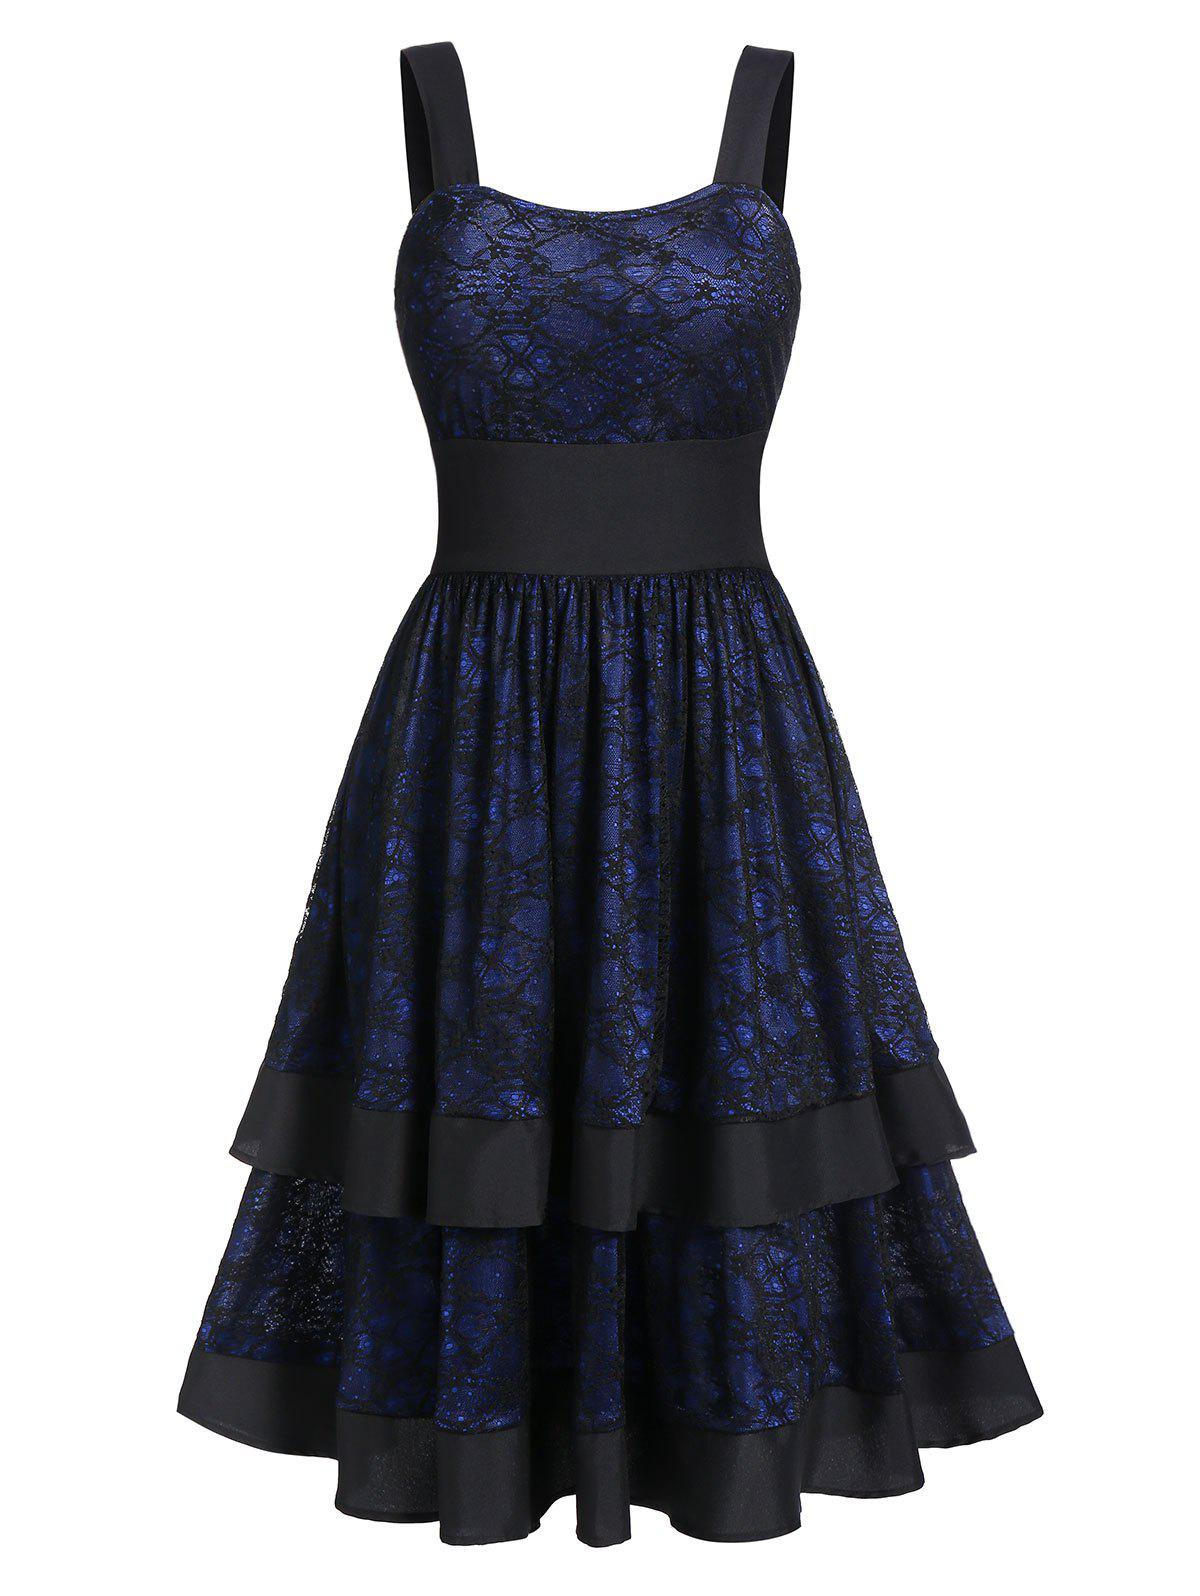 Lace A Line Flounce Layered Square Neck Dress - DEEP BLUE 3XL